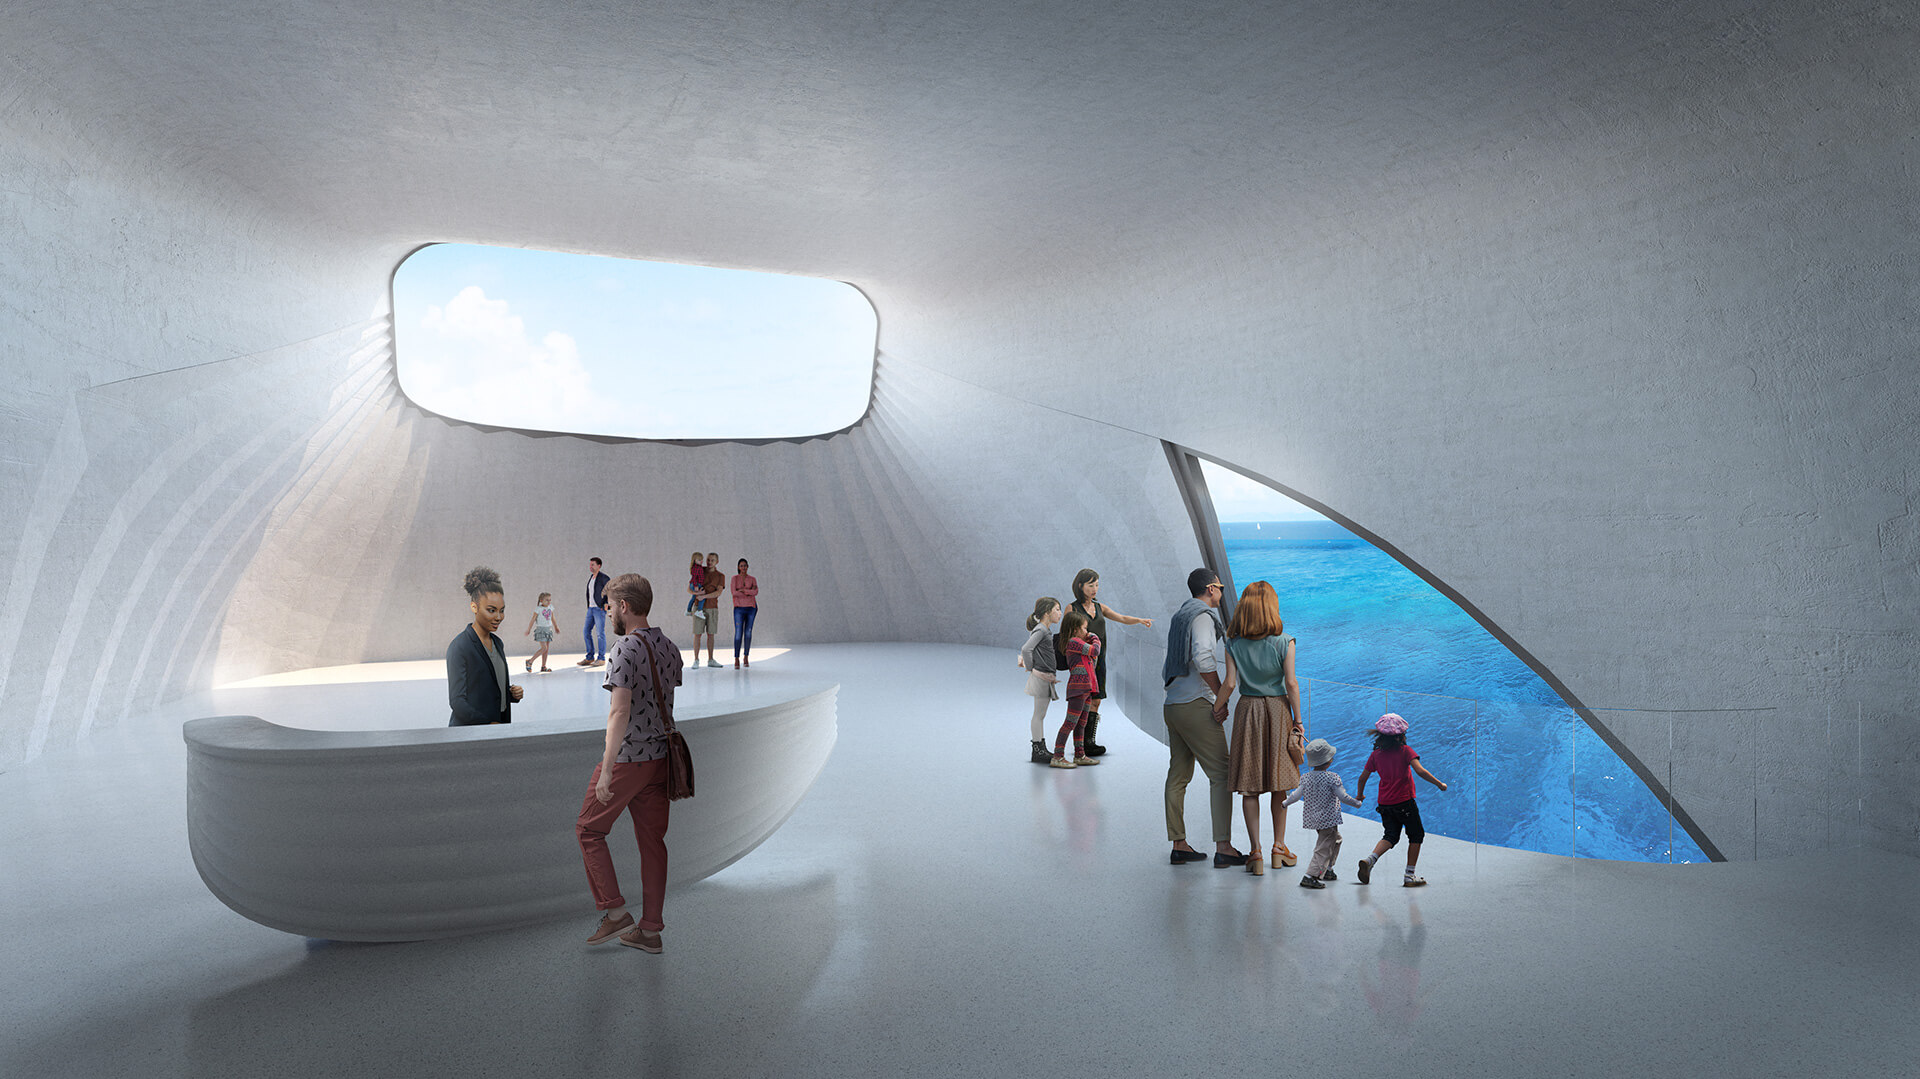 The Centre will also include art galleries, exhibition spaces, viewing stations and an underwater restaurant | Australian Underwater Discovery Centre by Baca Architects | STIRworld